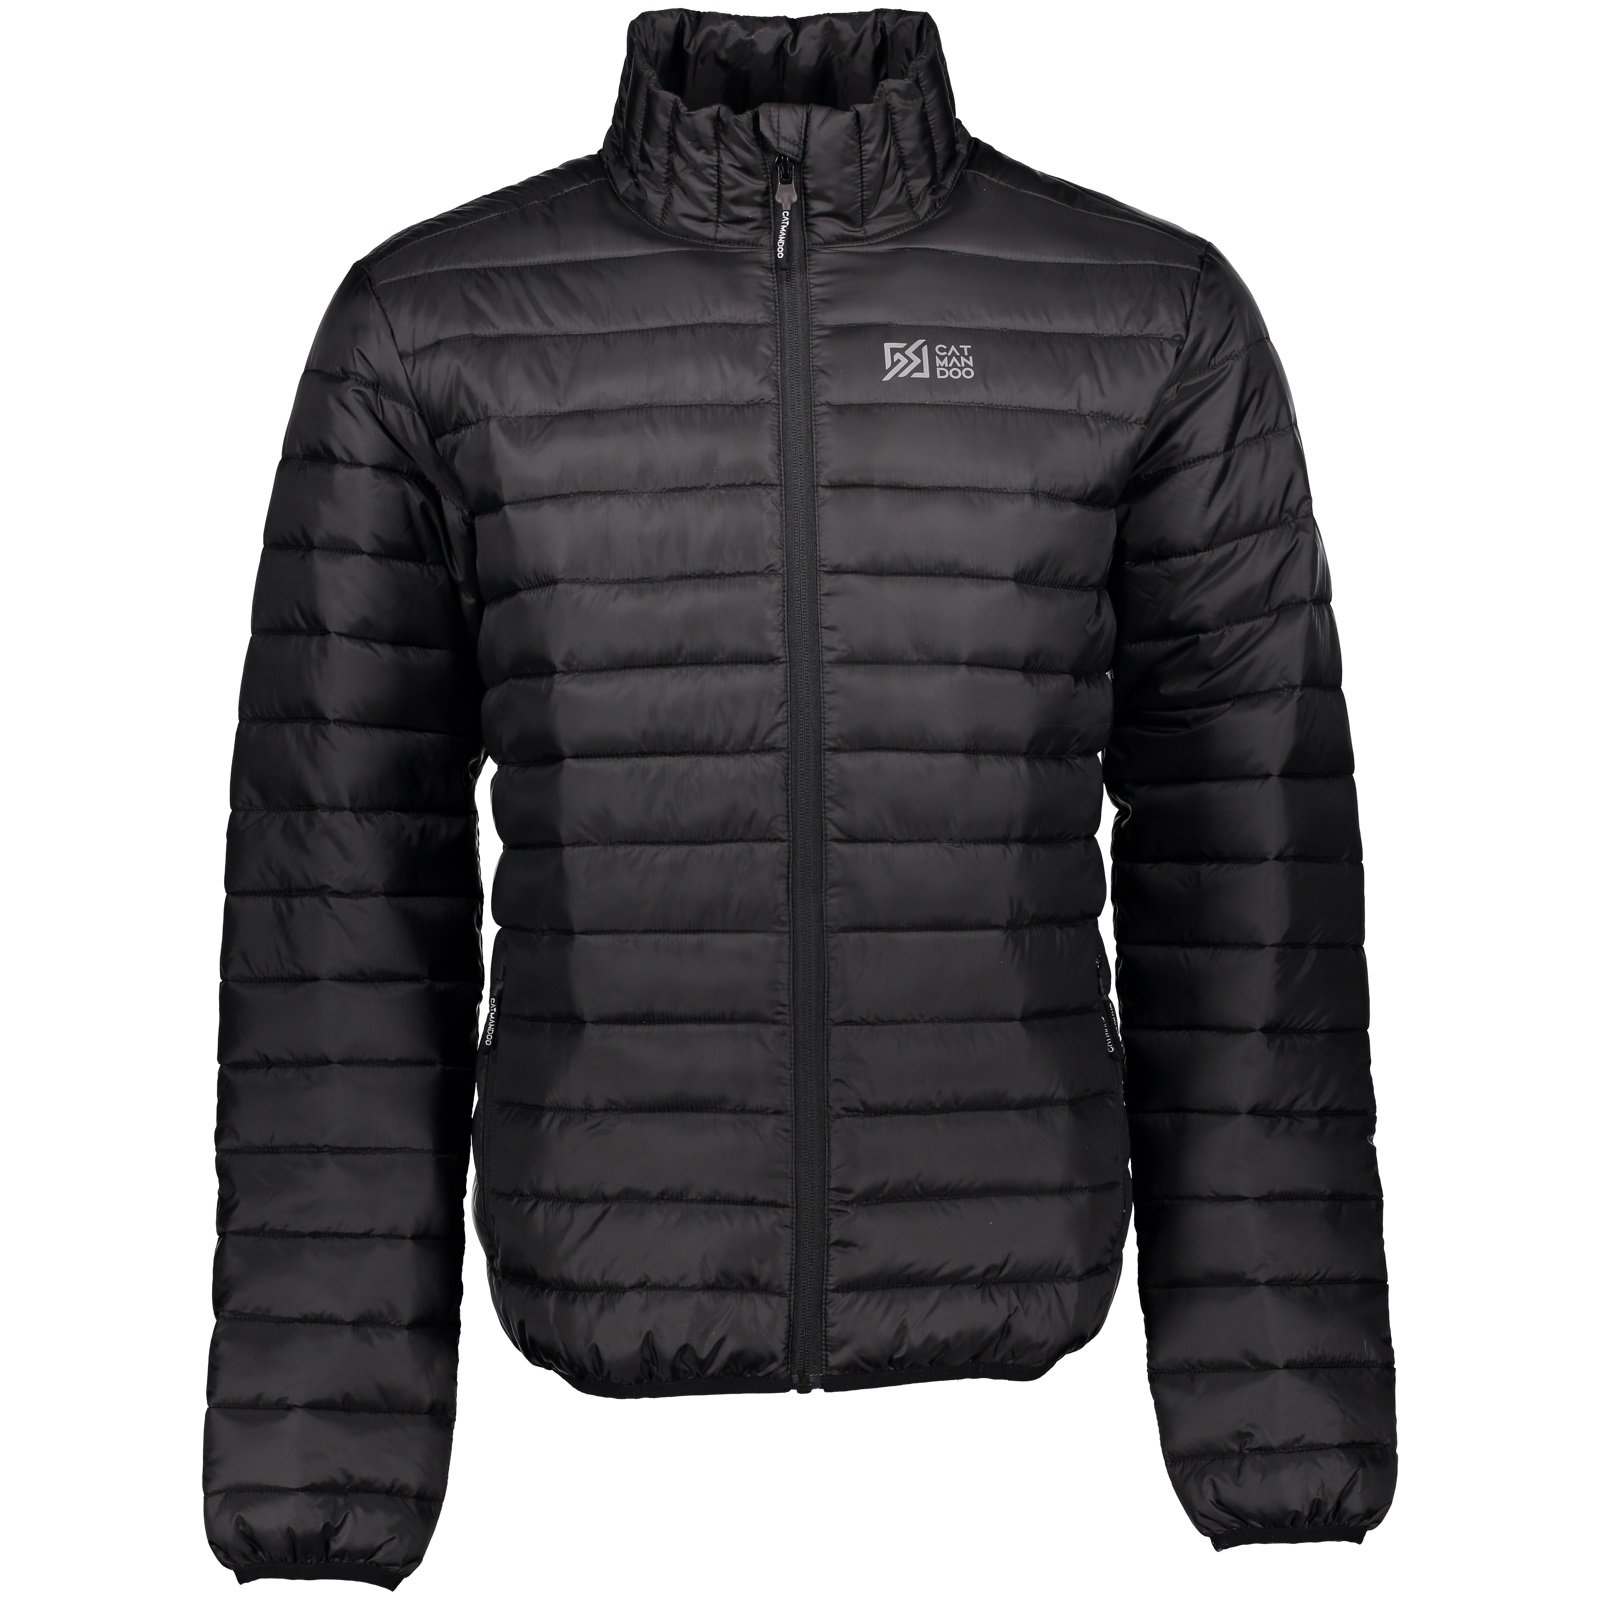 Catmandoo_Men_s_Roomi_Down_Imitation_Jacket_Black_Front_1024x1024@2x